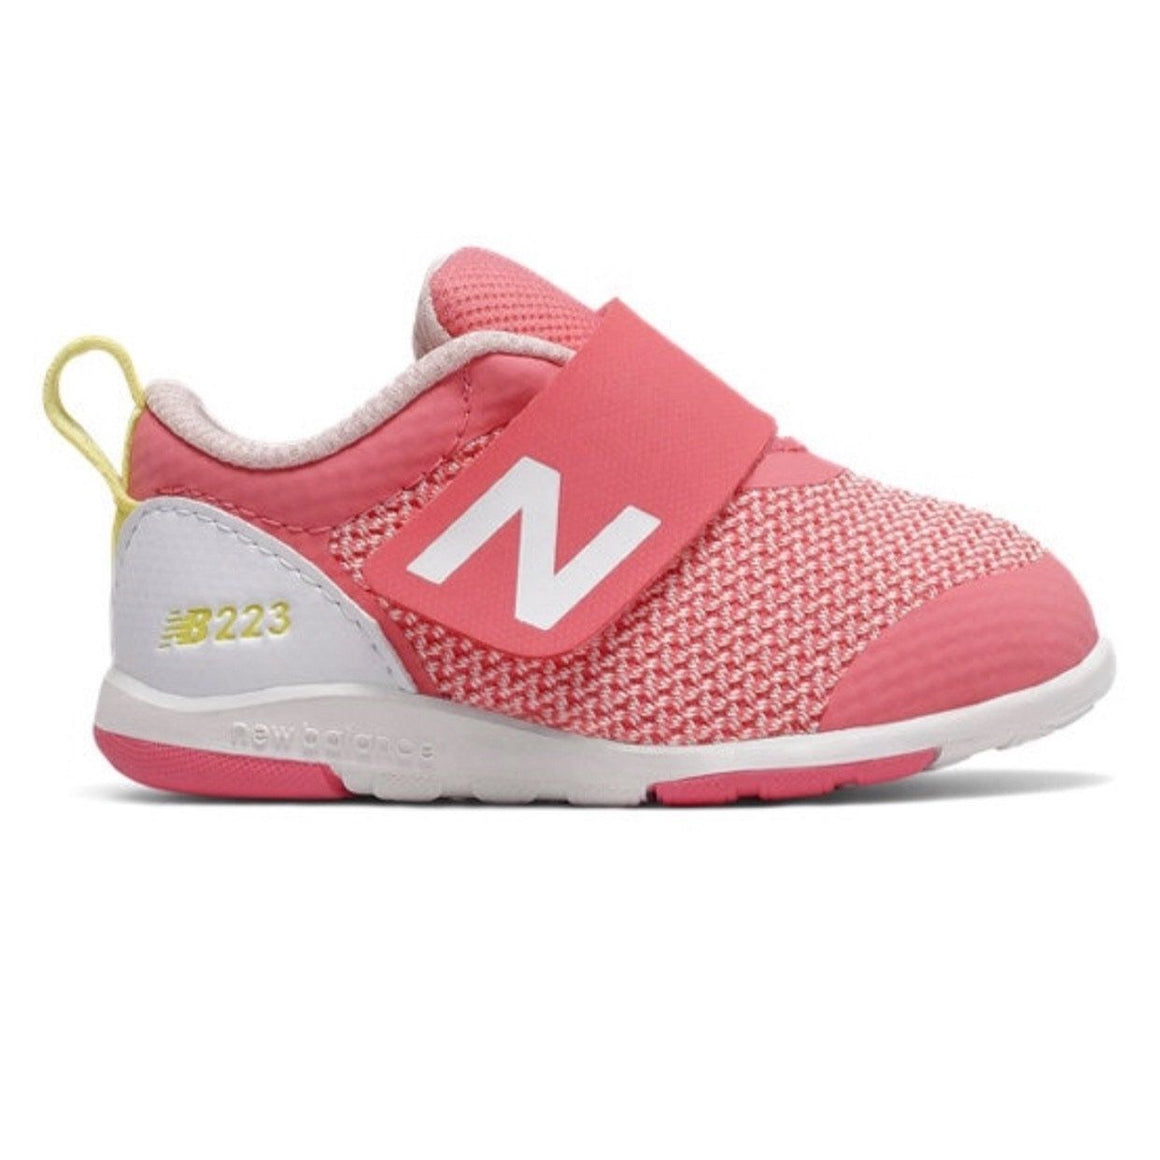 New Balance - IO223PKY Pink Girl's Running Shoes (Toddler 2 - Kids 10) Footwear New Balance Toddler 2